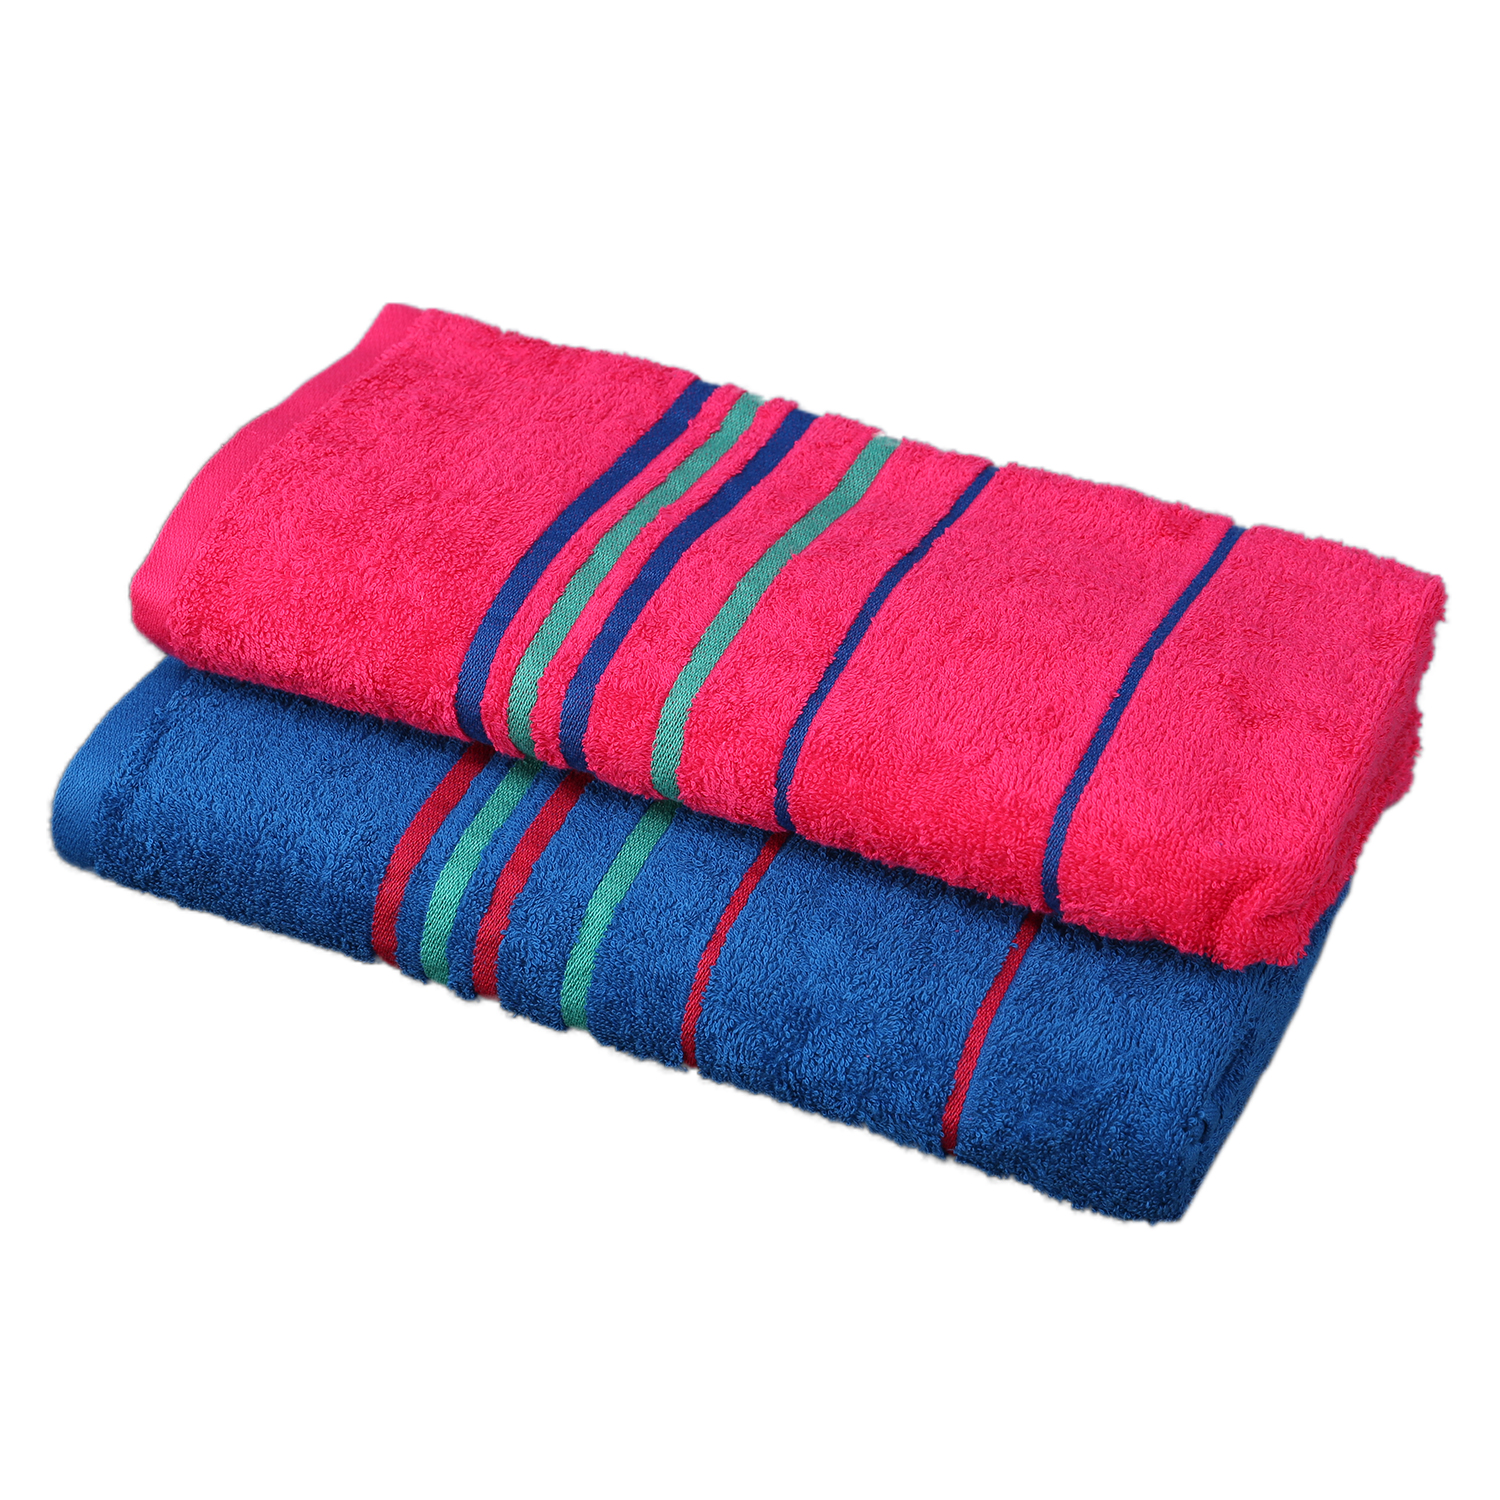 Emilia Bath Towel Blue & Fuchsia Carded Cotton Bath Towels in Blue & Fuchsia Colour by Living Essence